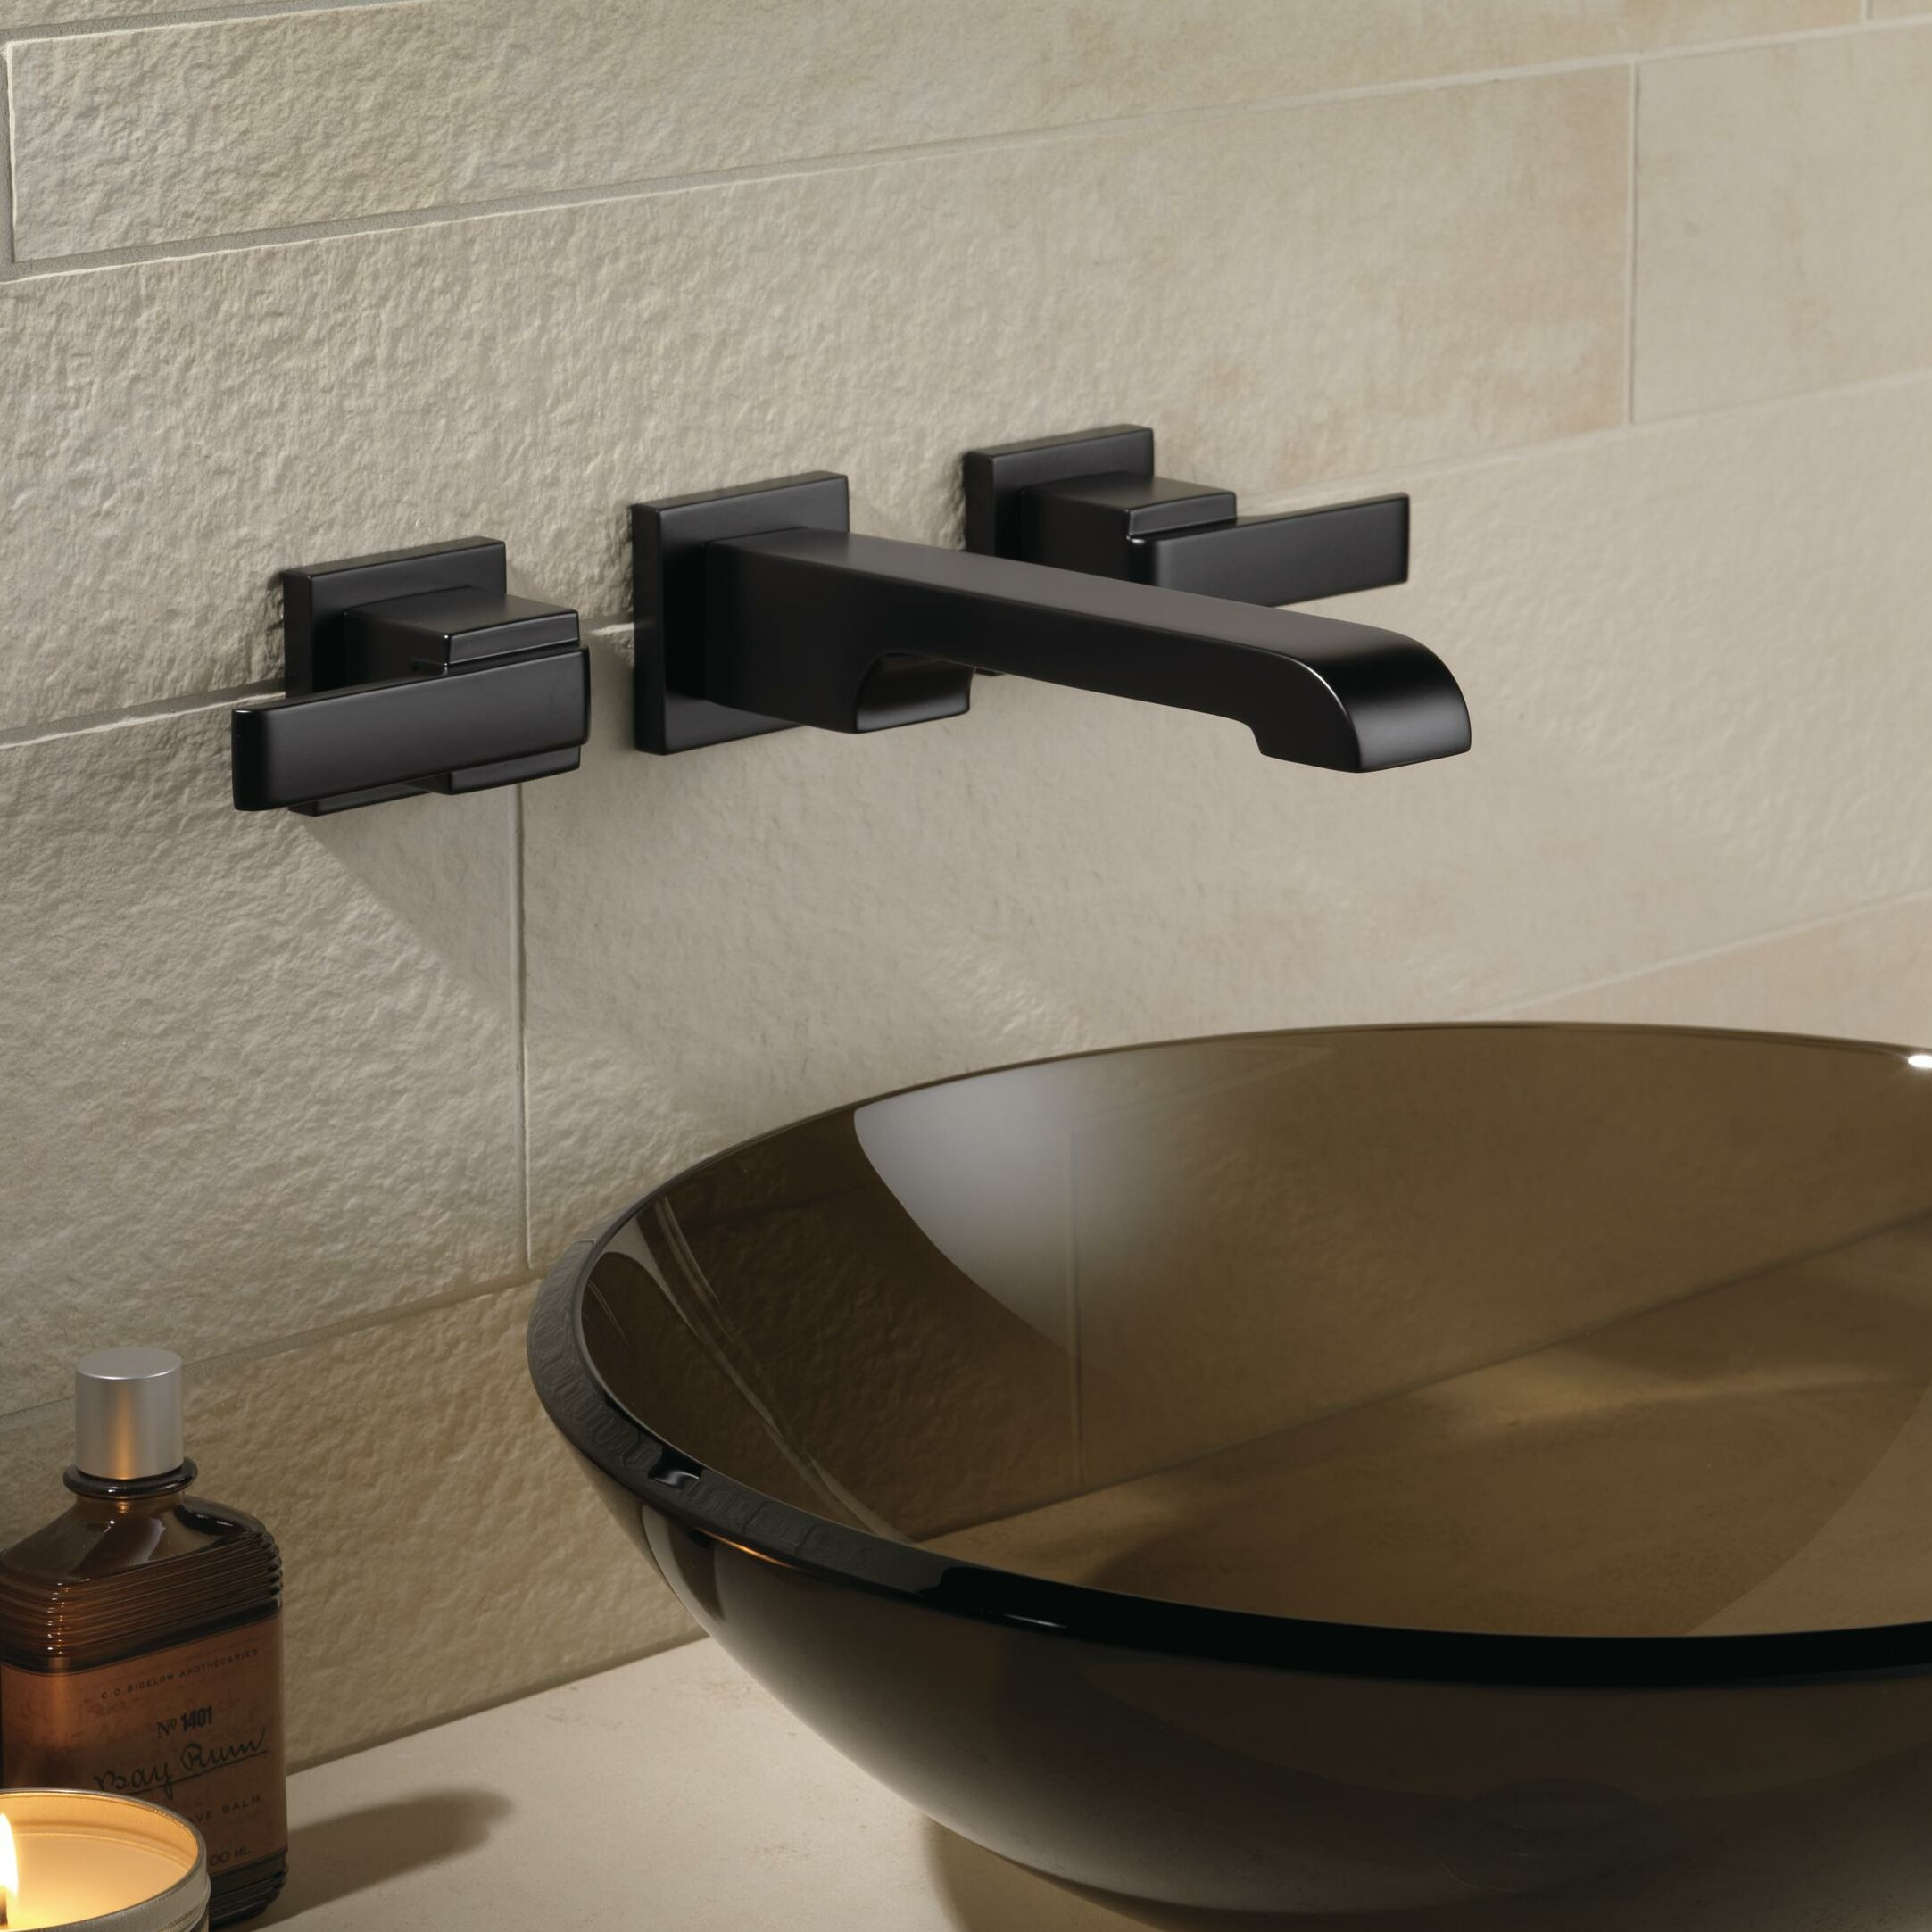 faucets with oil lever bathroom mount handles triton l rubbed bronze tipton wall faucet